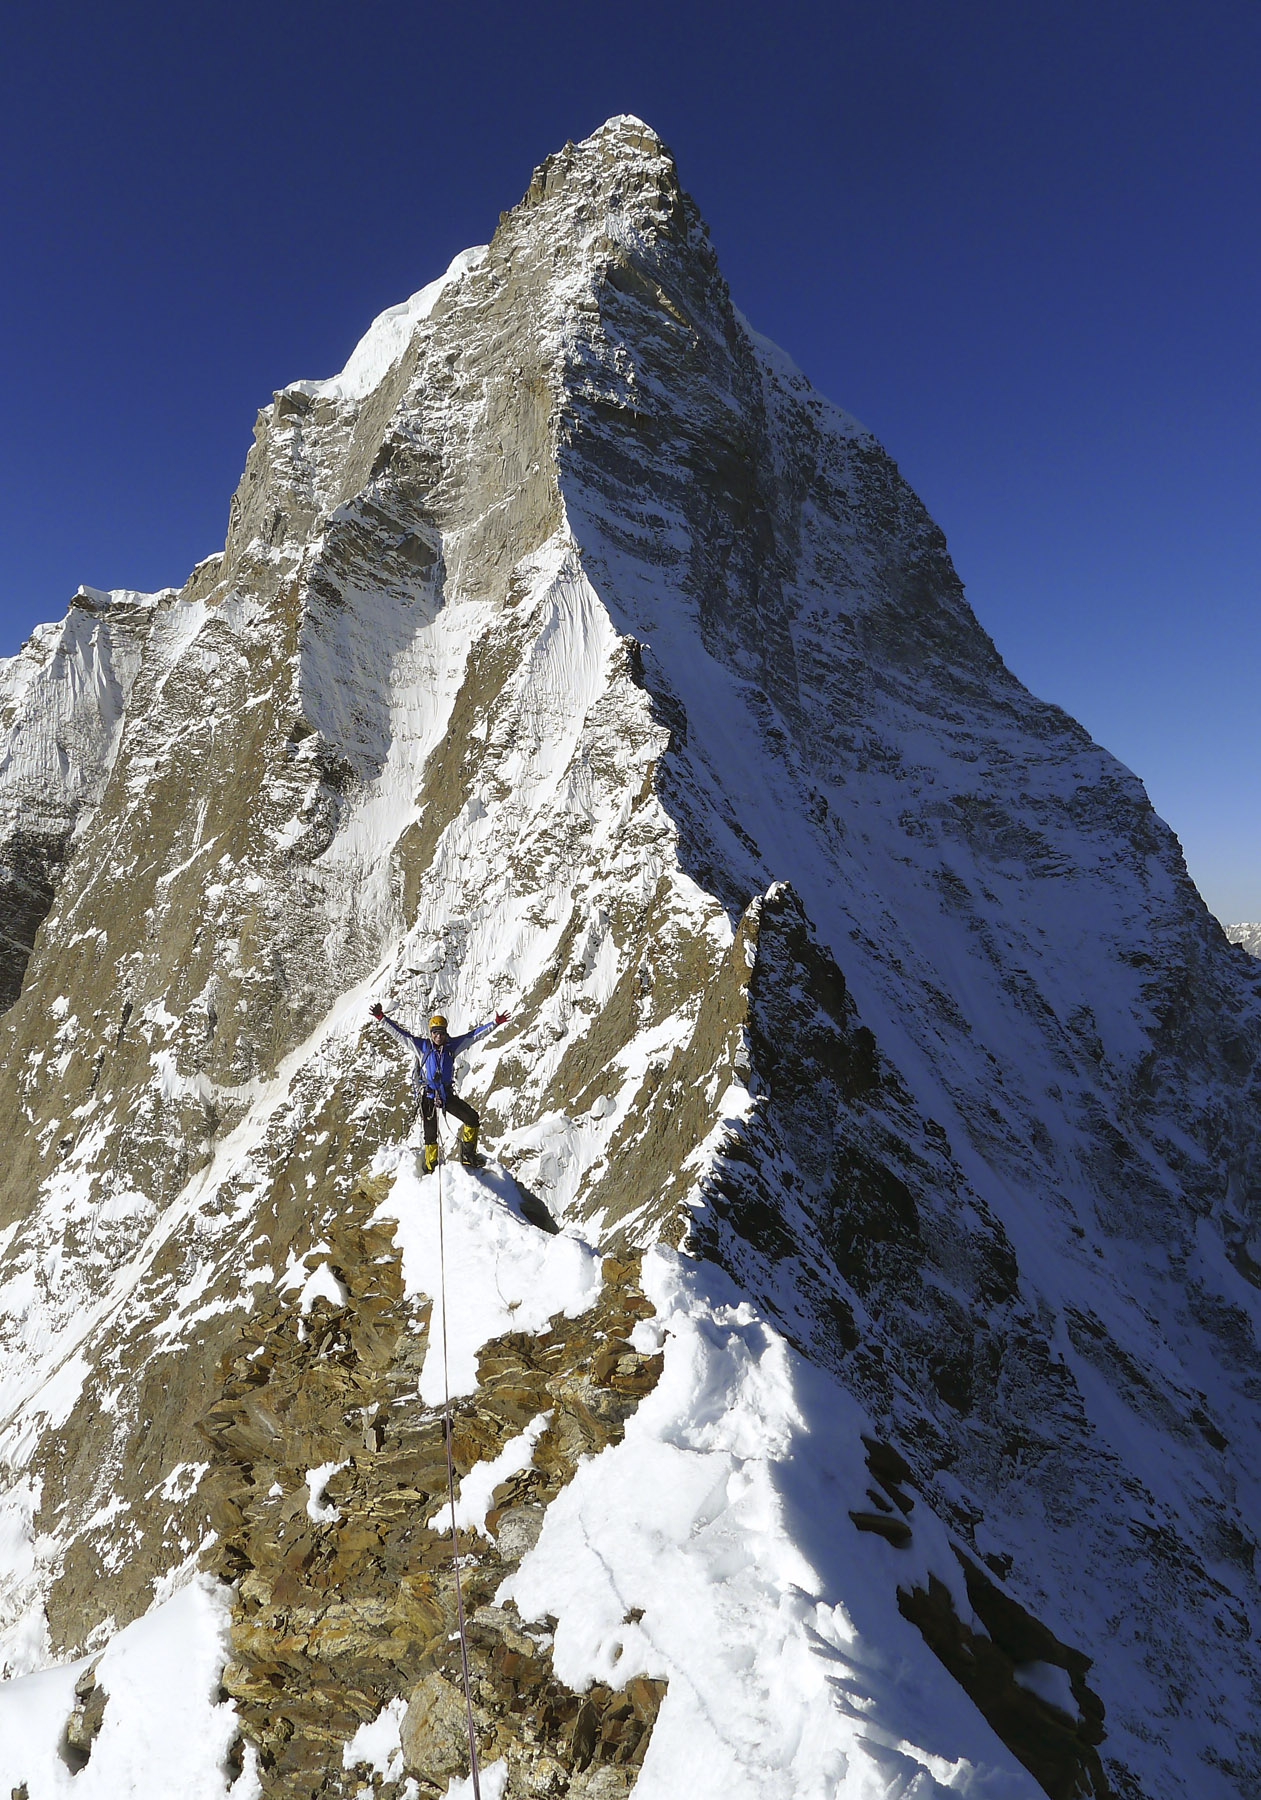 Mick Fowler on the summit of Point ca 5,500m, with the Prow of Shiva behind. Paul Ramsden